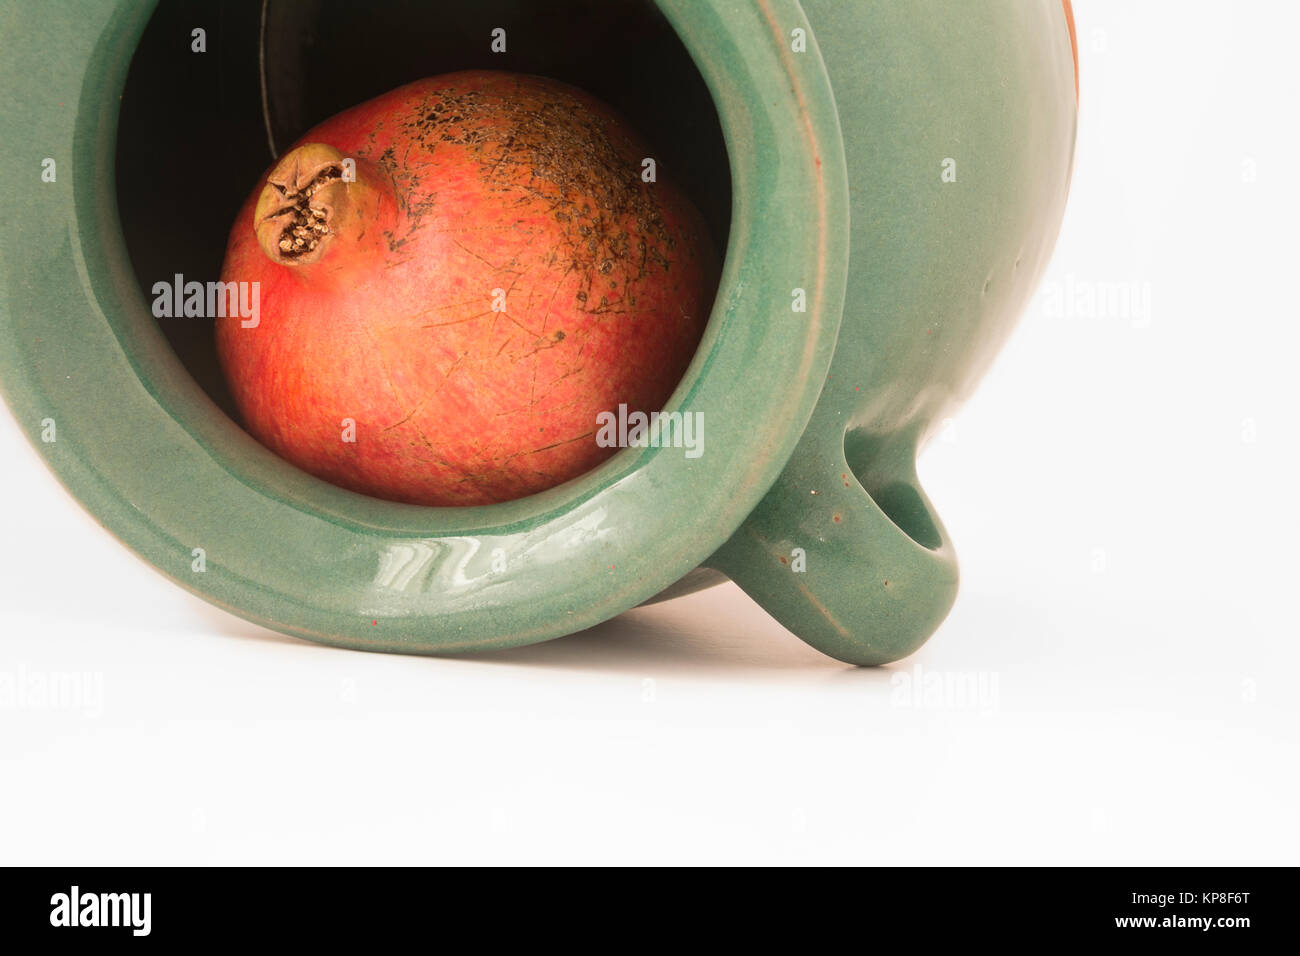 close up view of a red pomegranate inside the greenish earthen jar - Stock Image